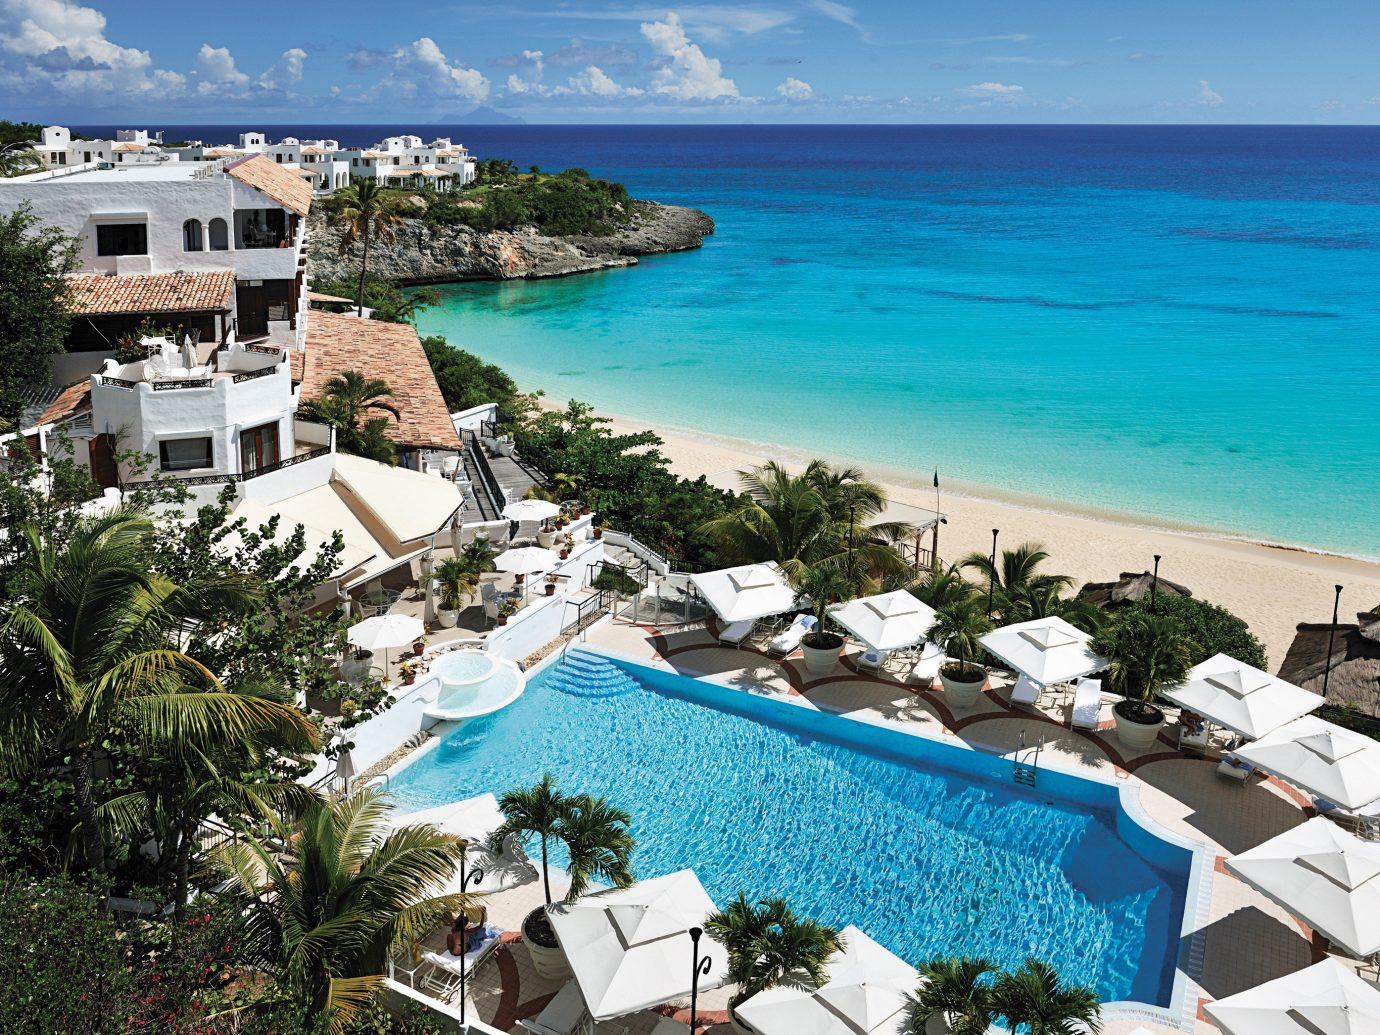 Beach Beachfront Family Hotels Luxury Resort Scenic views outdoor tree water leisure Nature property swimming pool vacation caribbean Sea estate bay Coast tourism Ocean resort town Lagoon cape Villa cove Water park marina blue reef shore surrounded